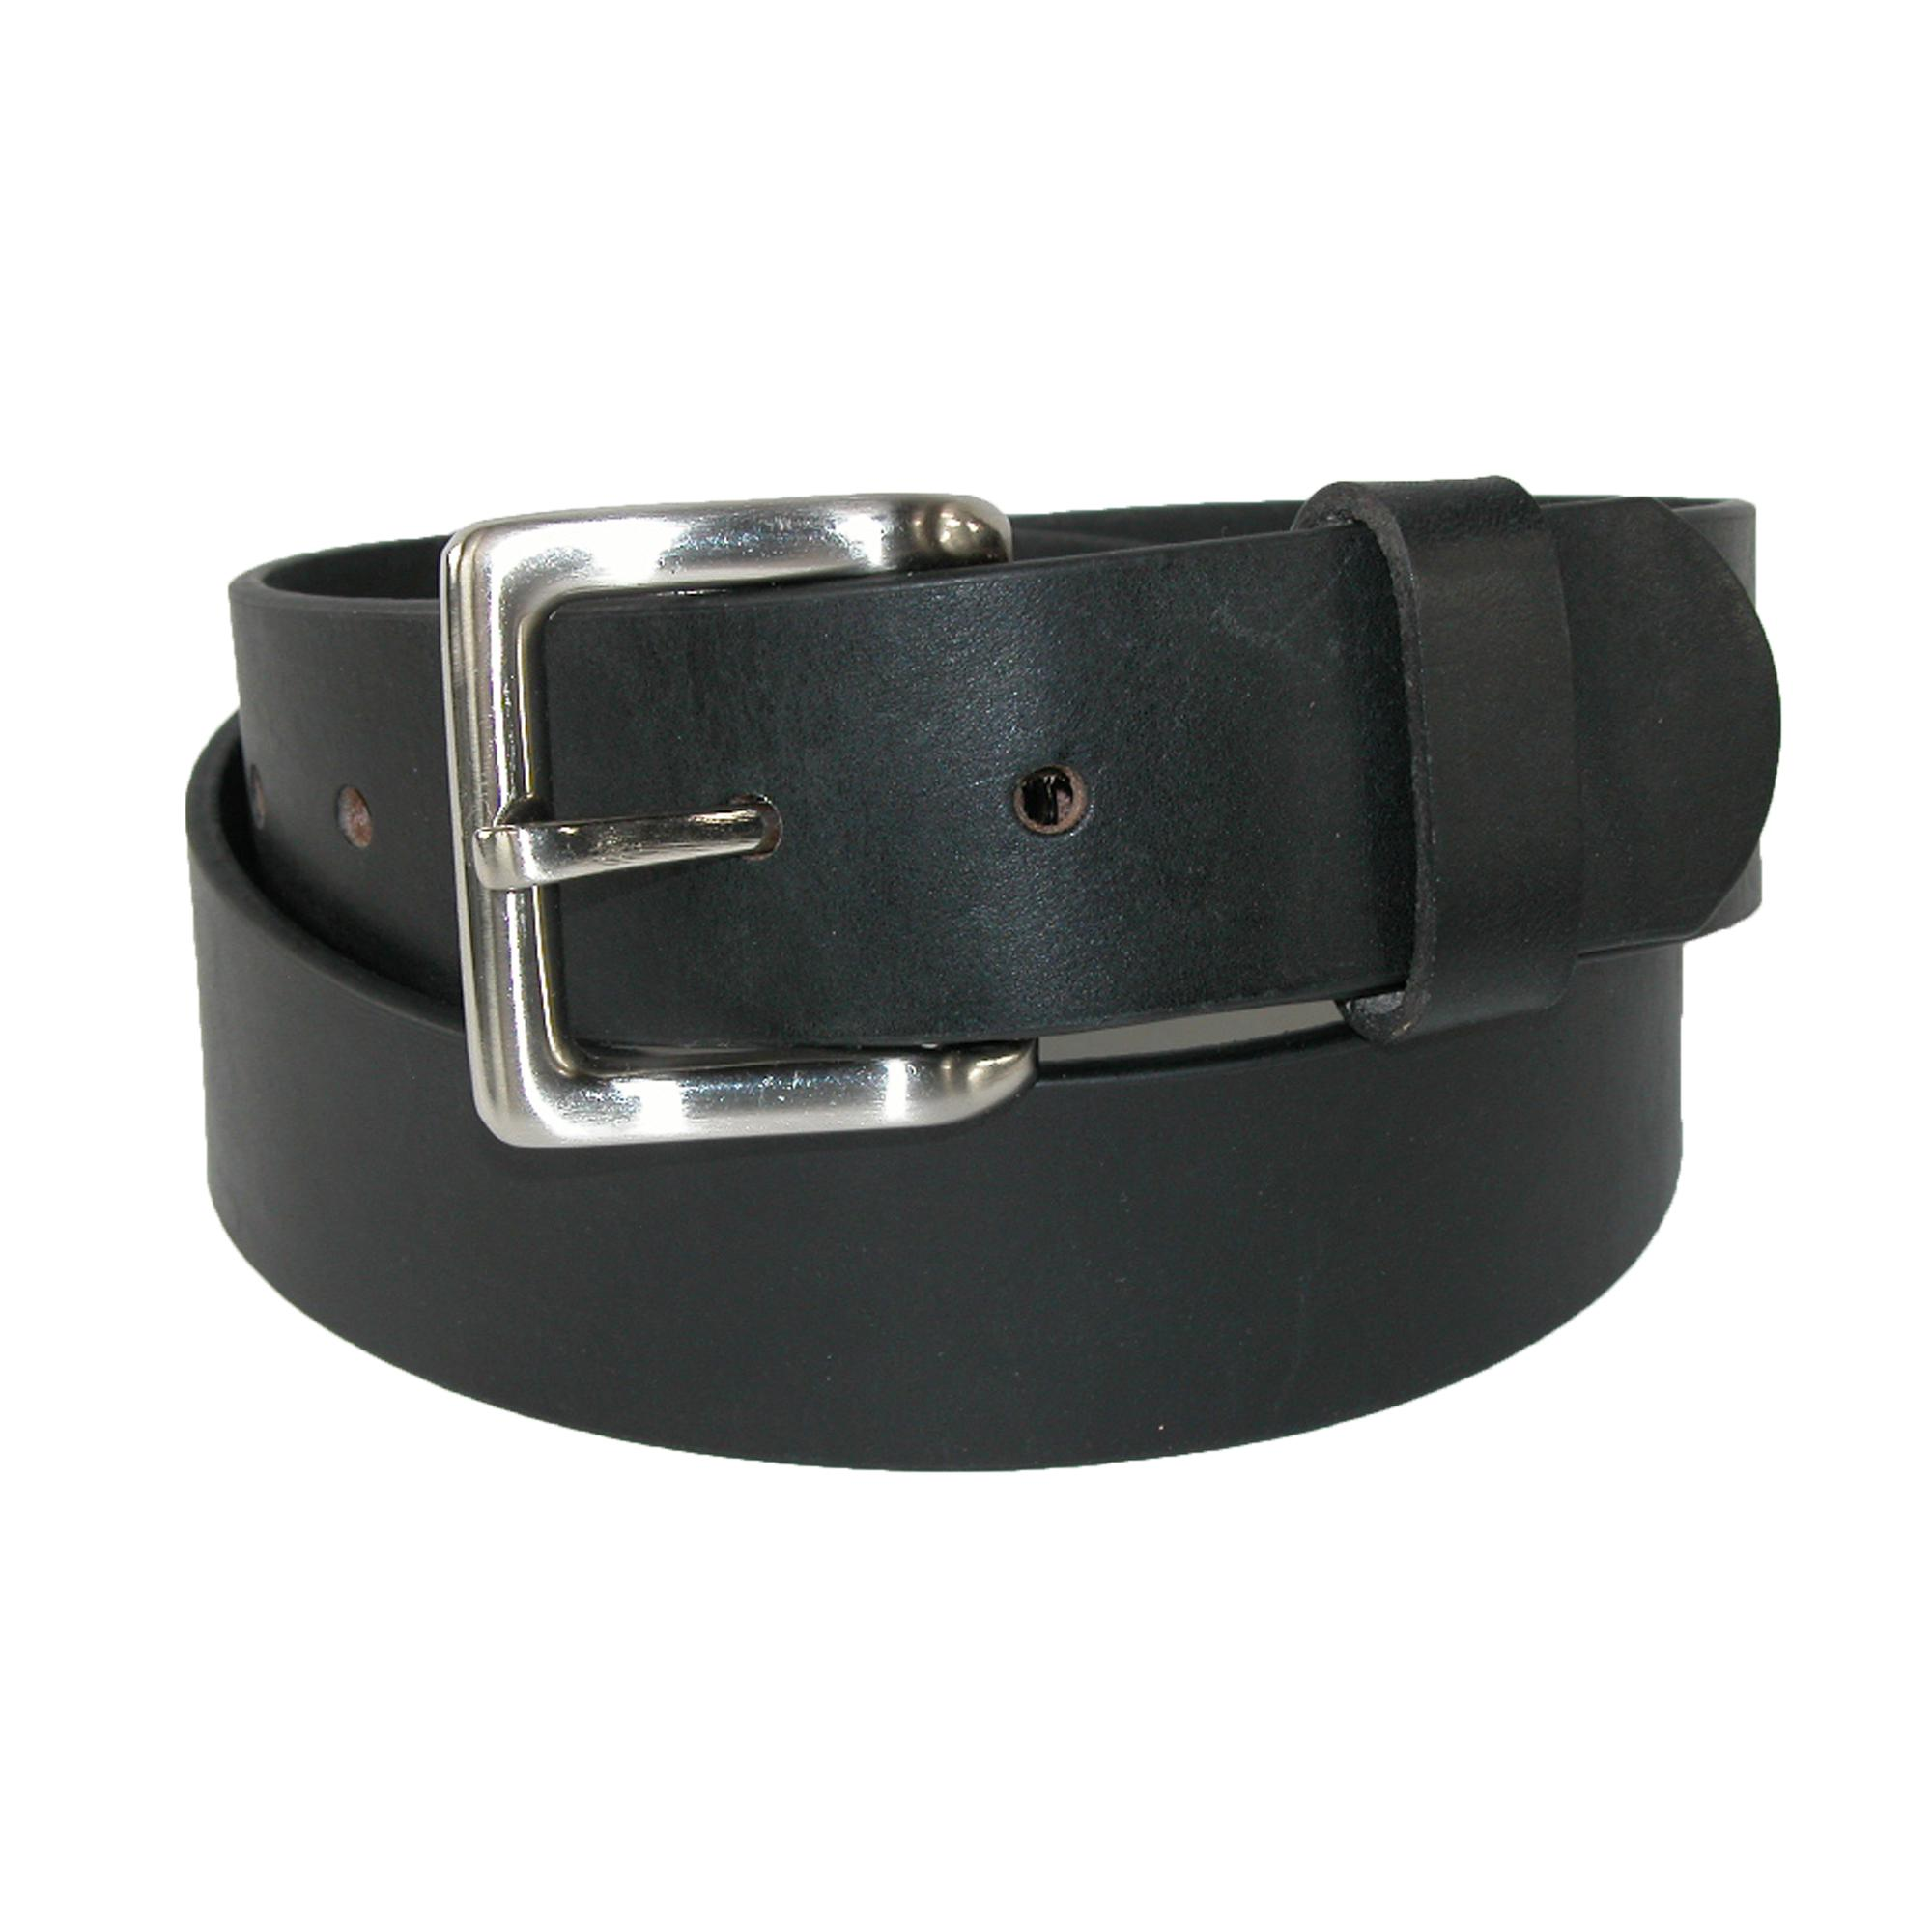 Toneka_Men's_Leather_Bridle_Belt_with_Removable_Buckle_-_Black_40